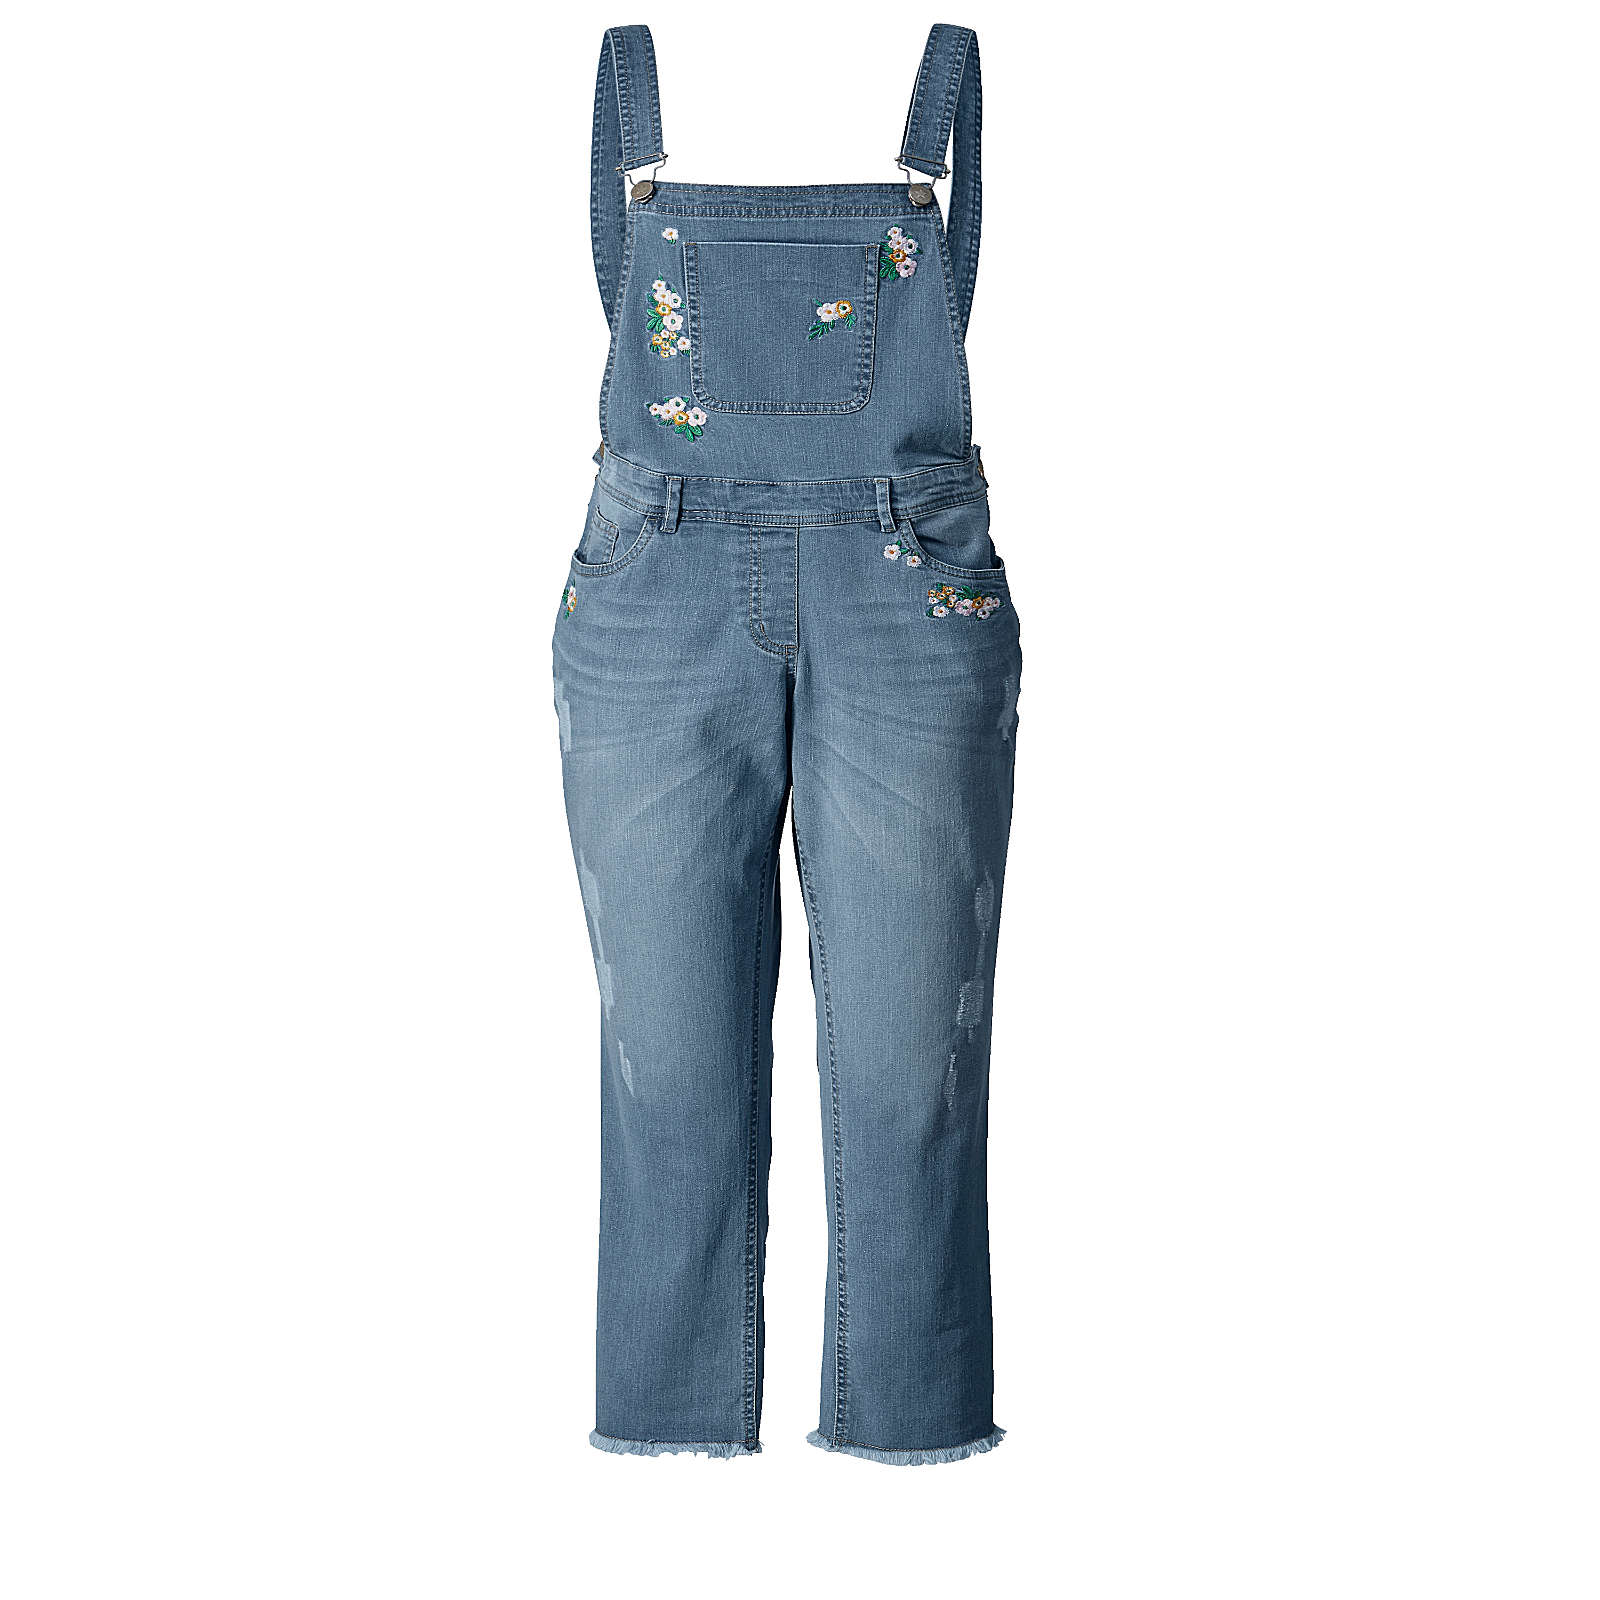 Angel of Style Latz-Jeans knöchellang mit Fransensaum blue denim Damen Gr. 48